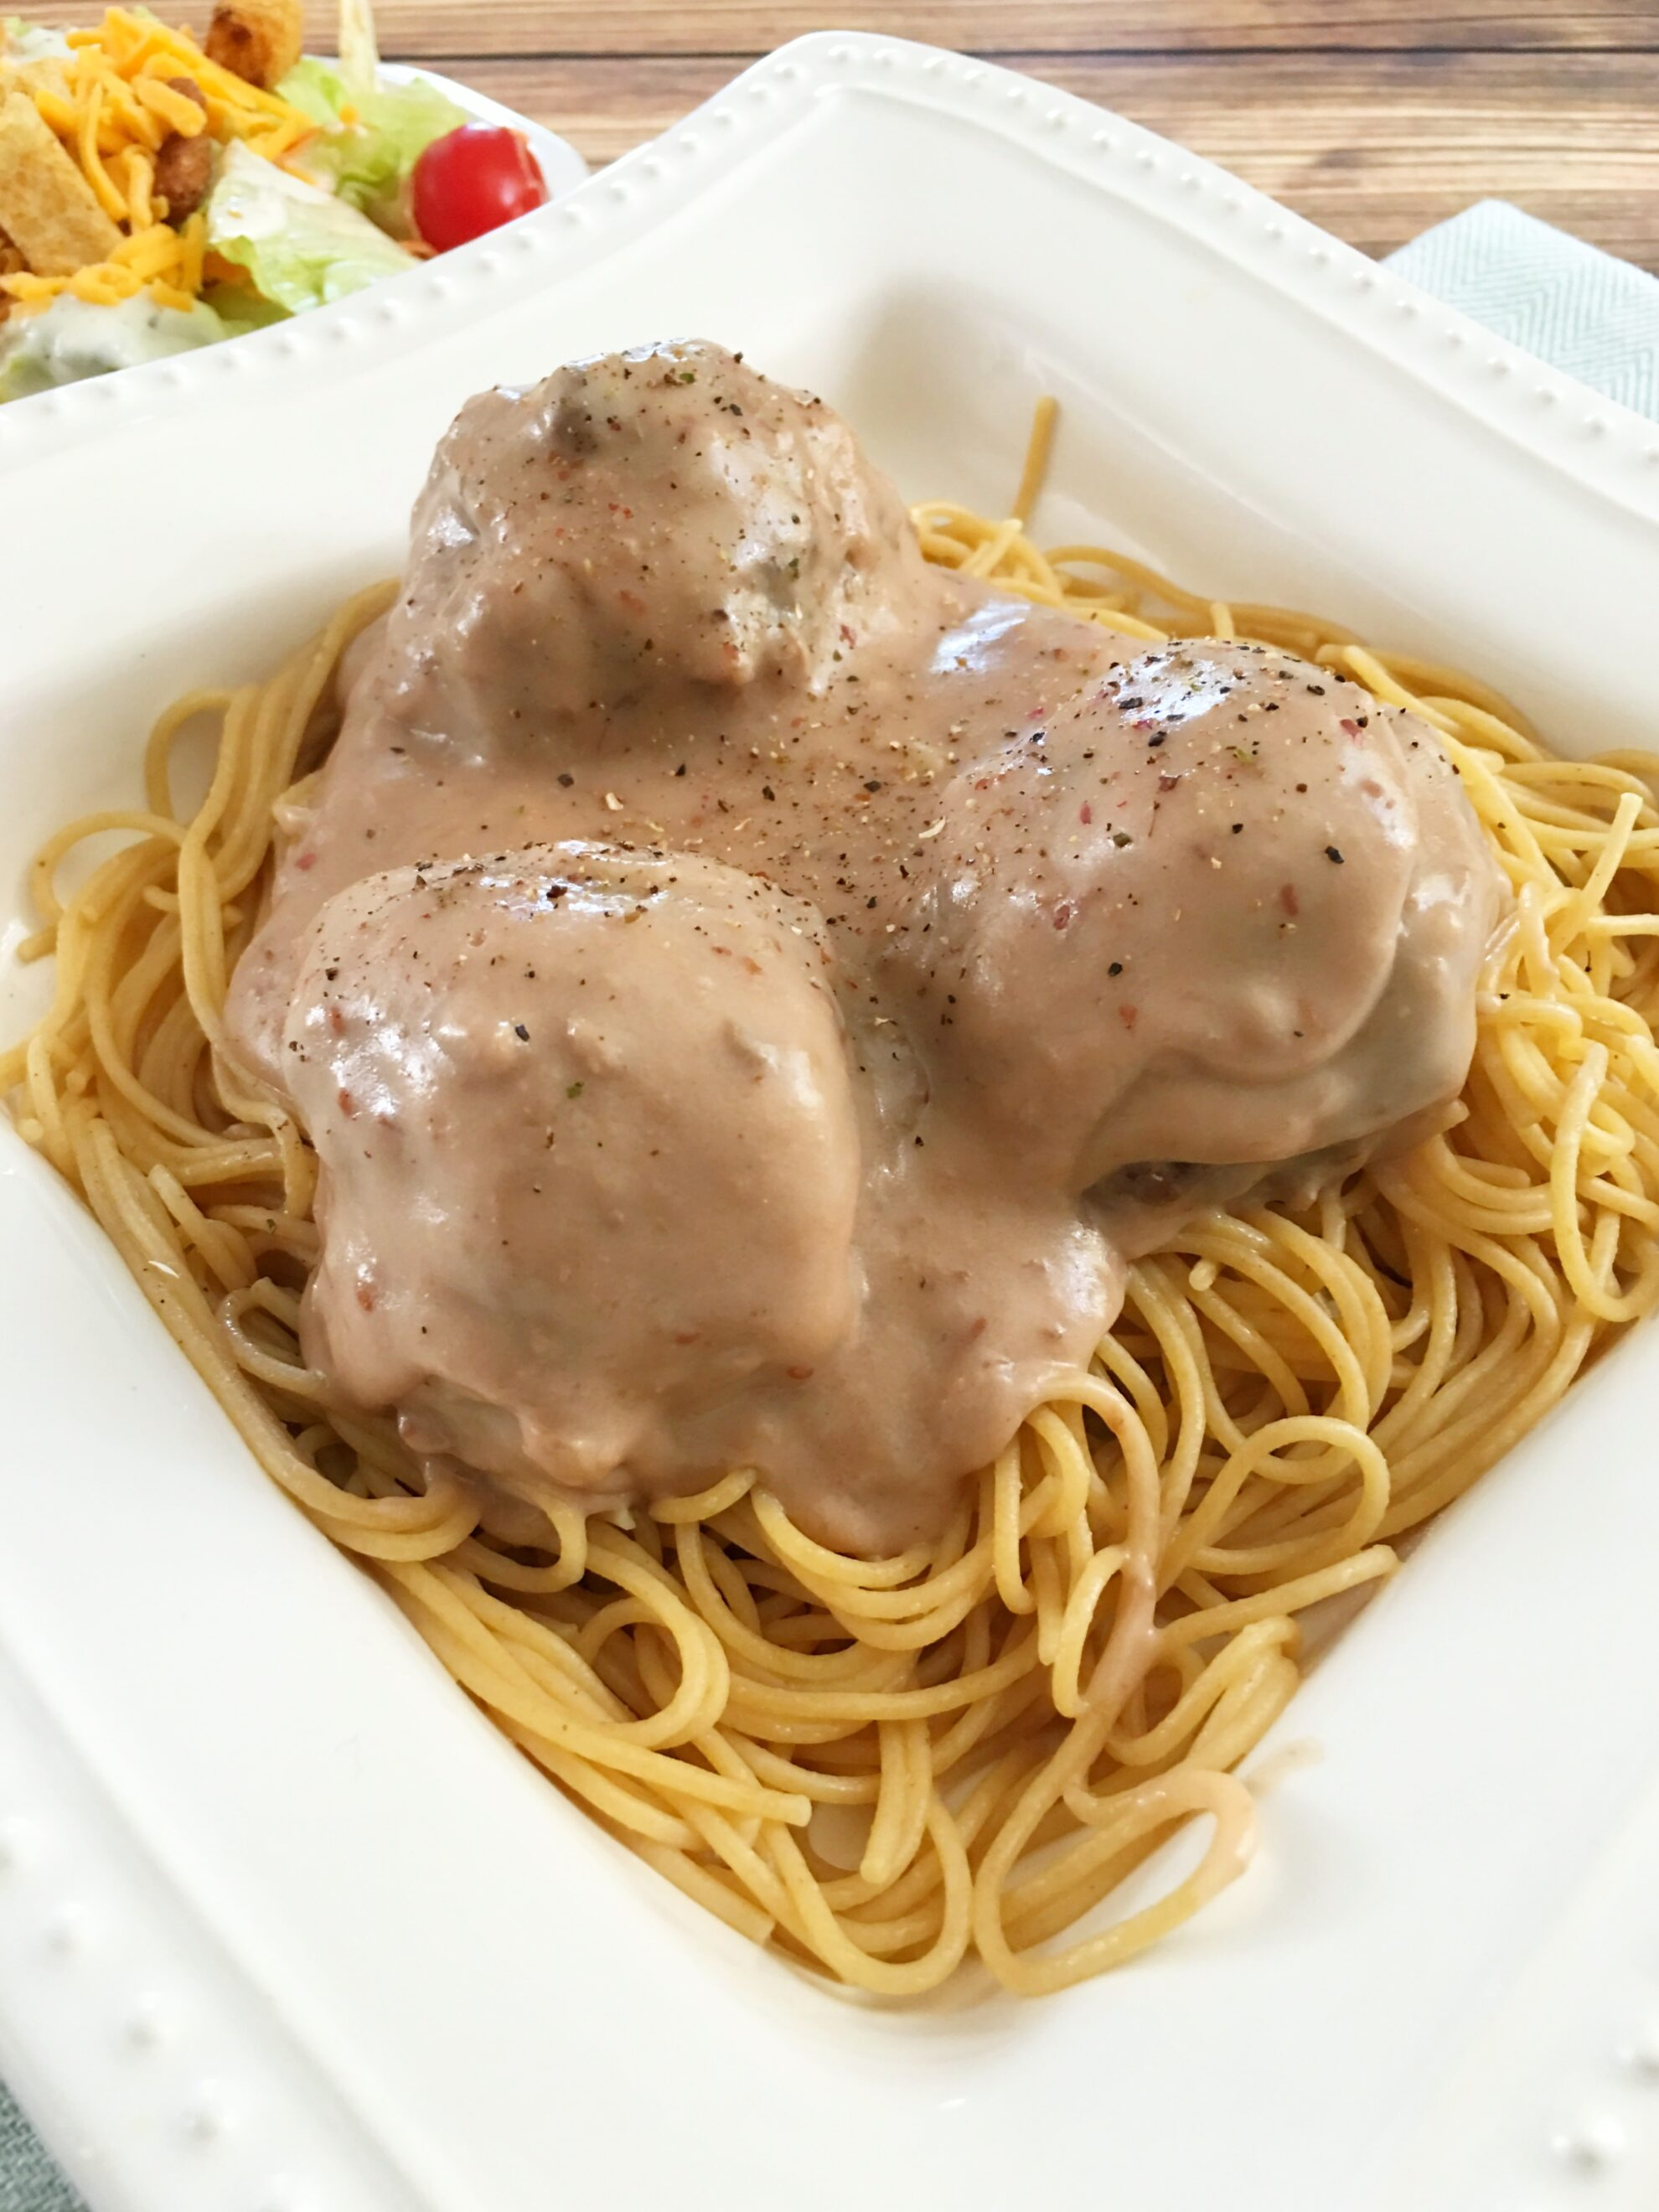 Baked Swedish Meatballs Recipe from $5 Dinners